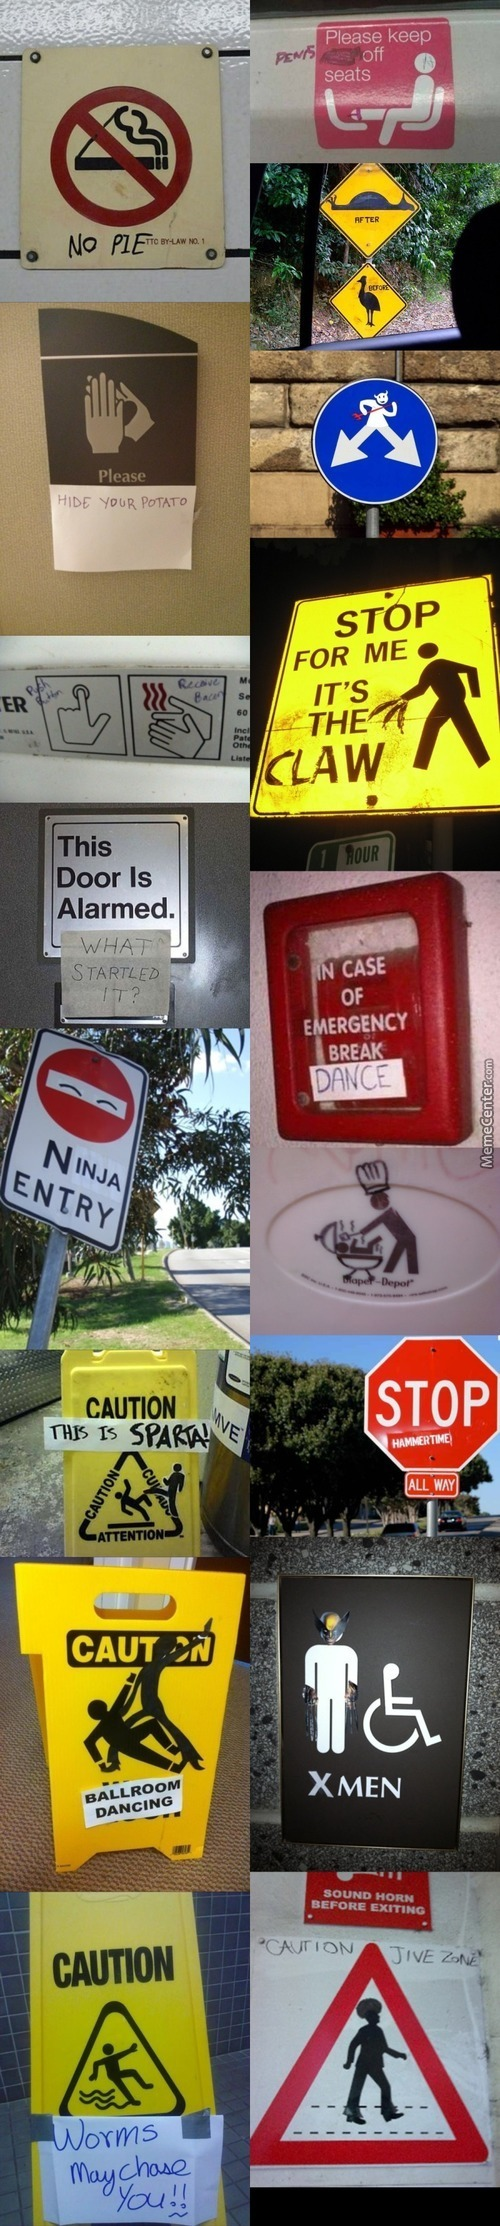 The 17 Most Creative Ways People Have Turned Boring Signs Into Something Hilarious